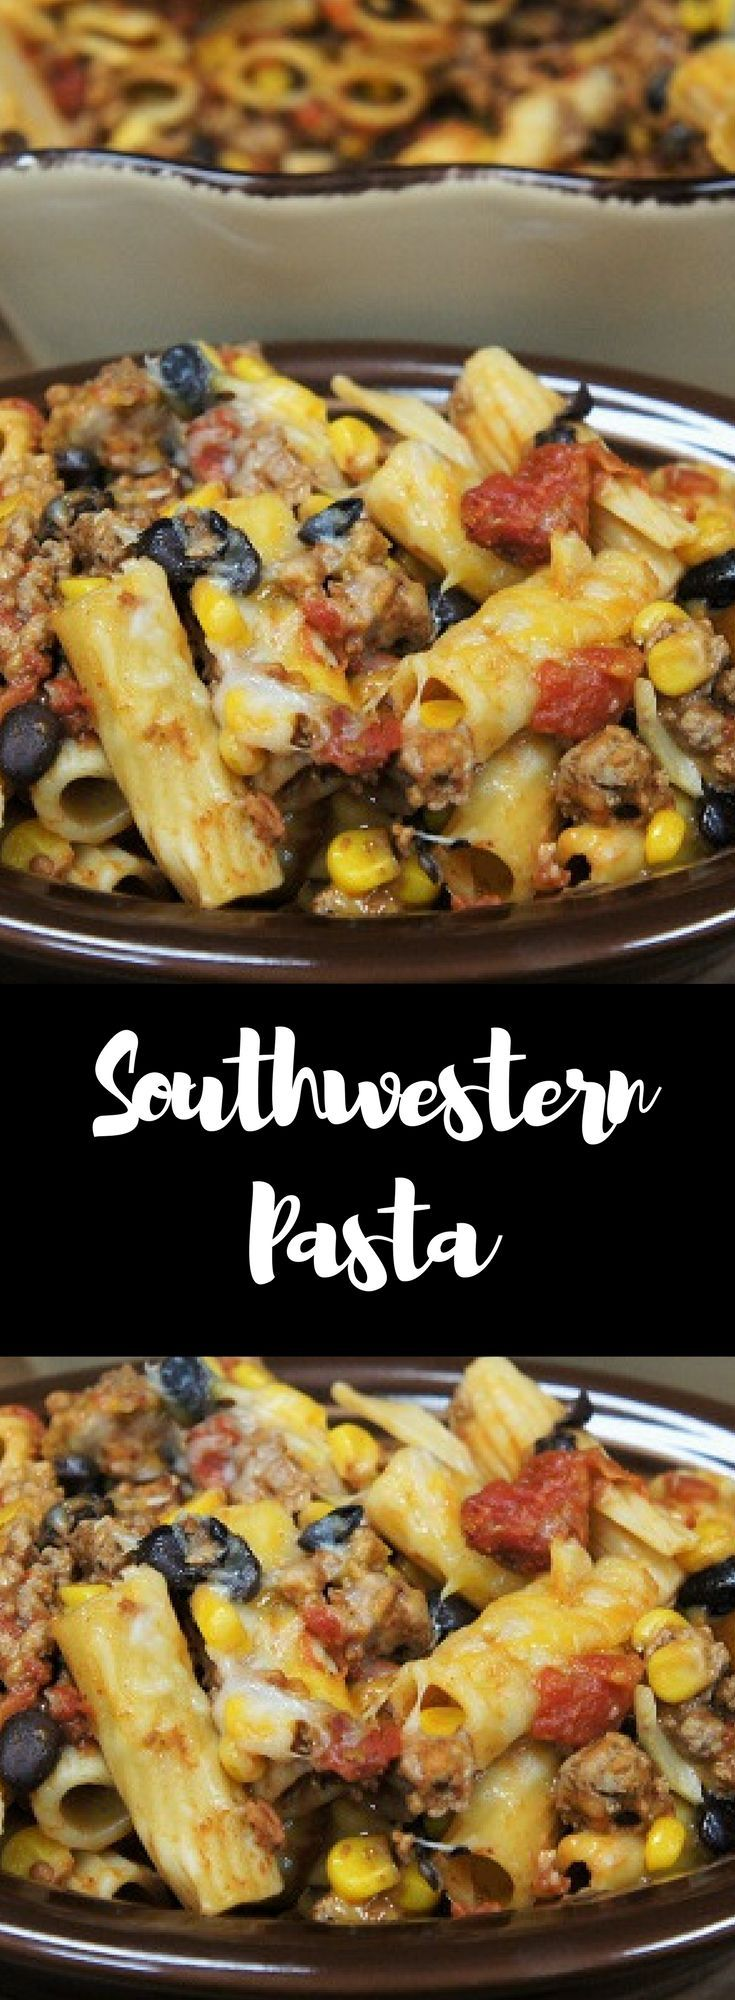 If you're looking for a quick, satisfying meal that will feed a crowd, try this Southwestern Pasta. Rigatoni pasta is combined with ground turkey that's been seasoned with southwestern-inspired spices and simmered with tomatoes, black beans and corn. Then it's all topped with cheese and baked until perfectly melted. Super flavorful and delicious!